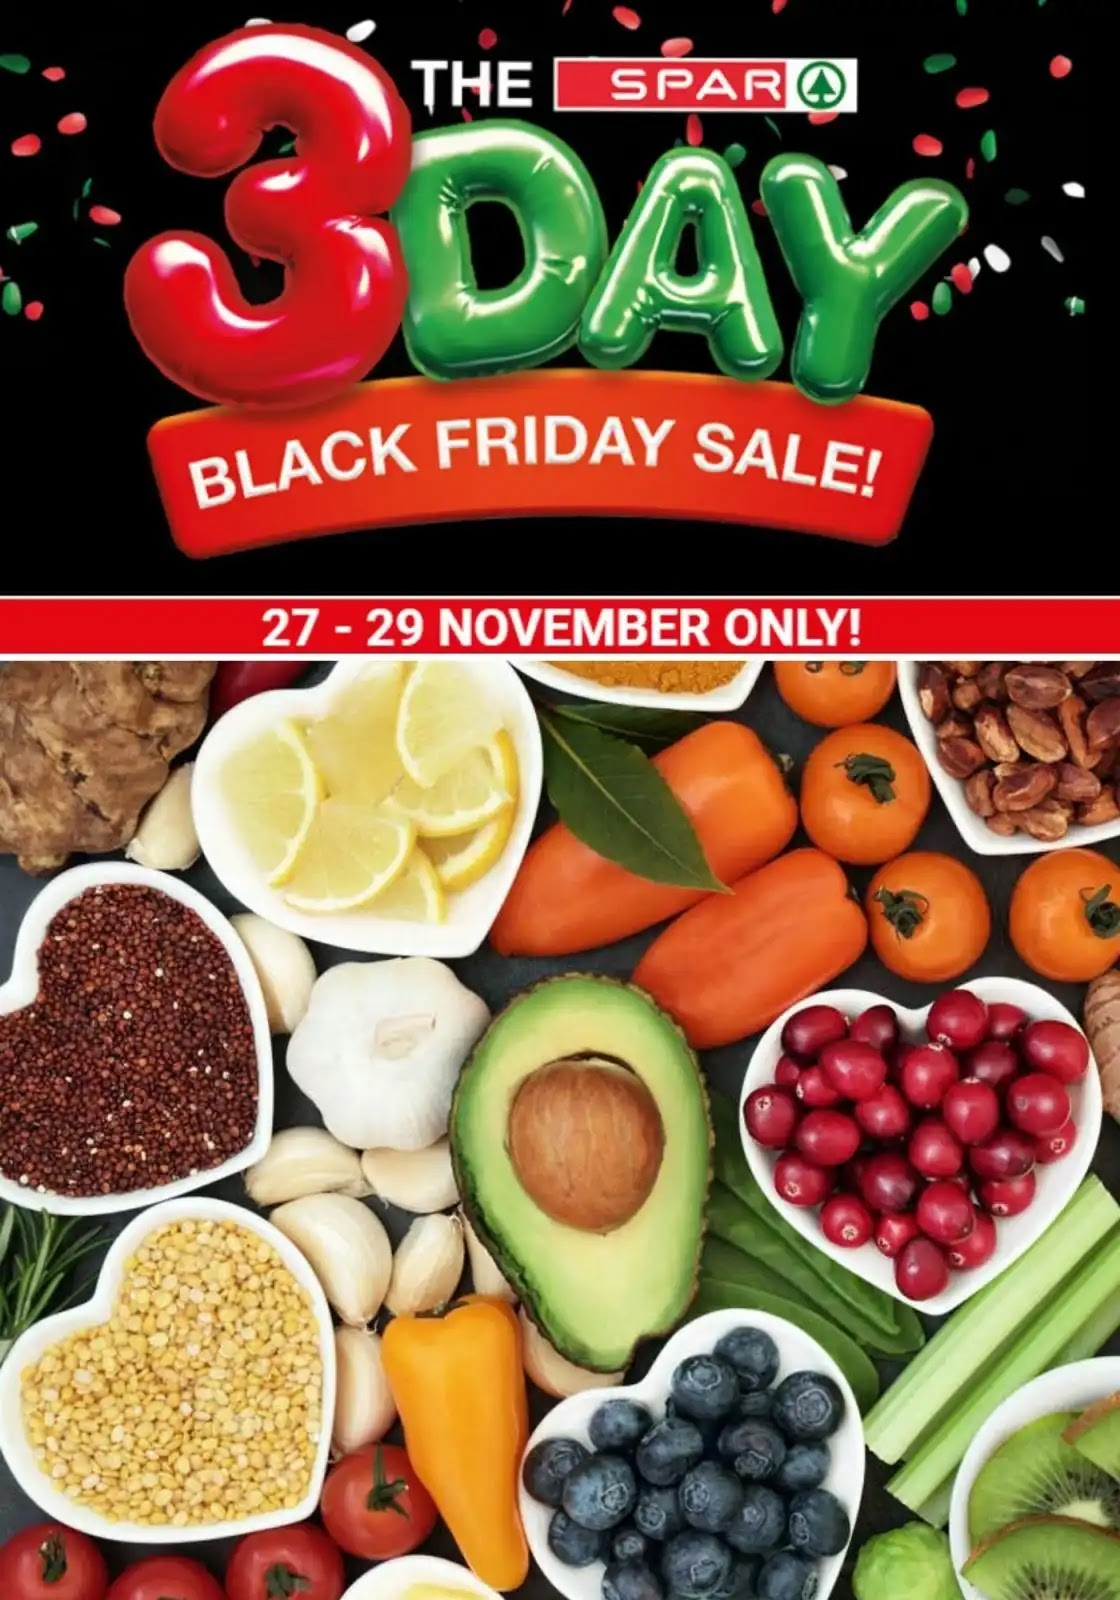 Spar Black Friday deals